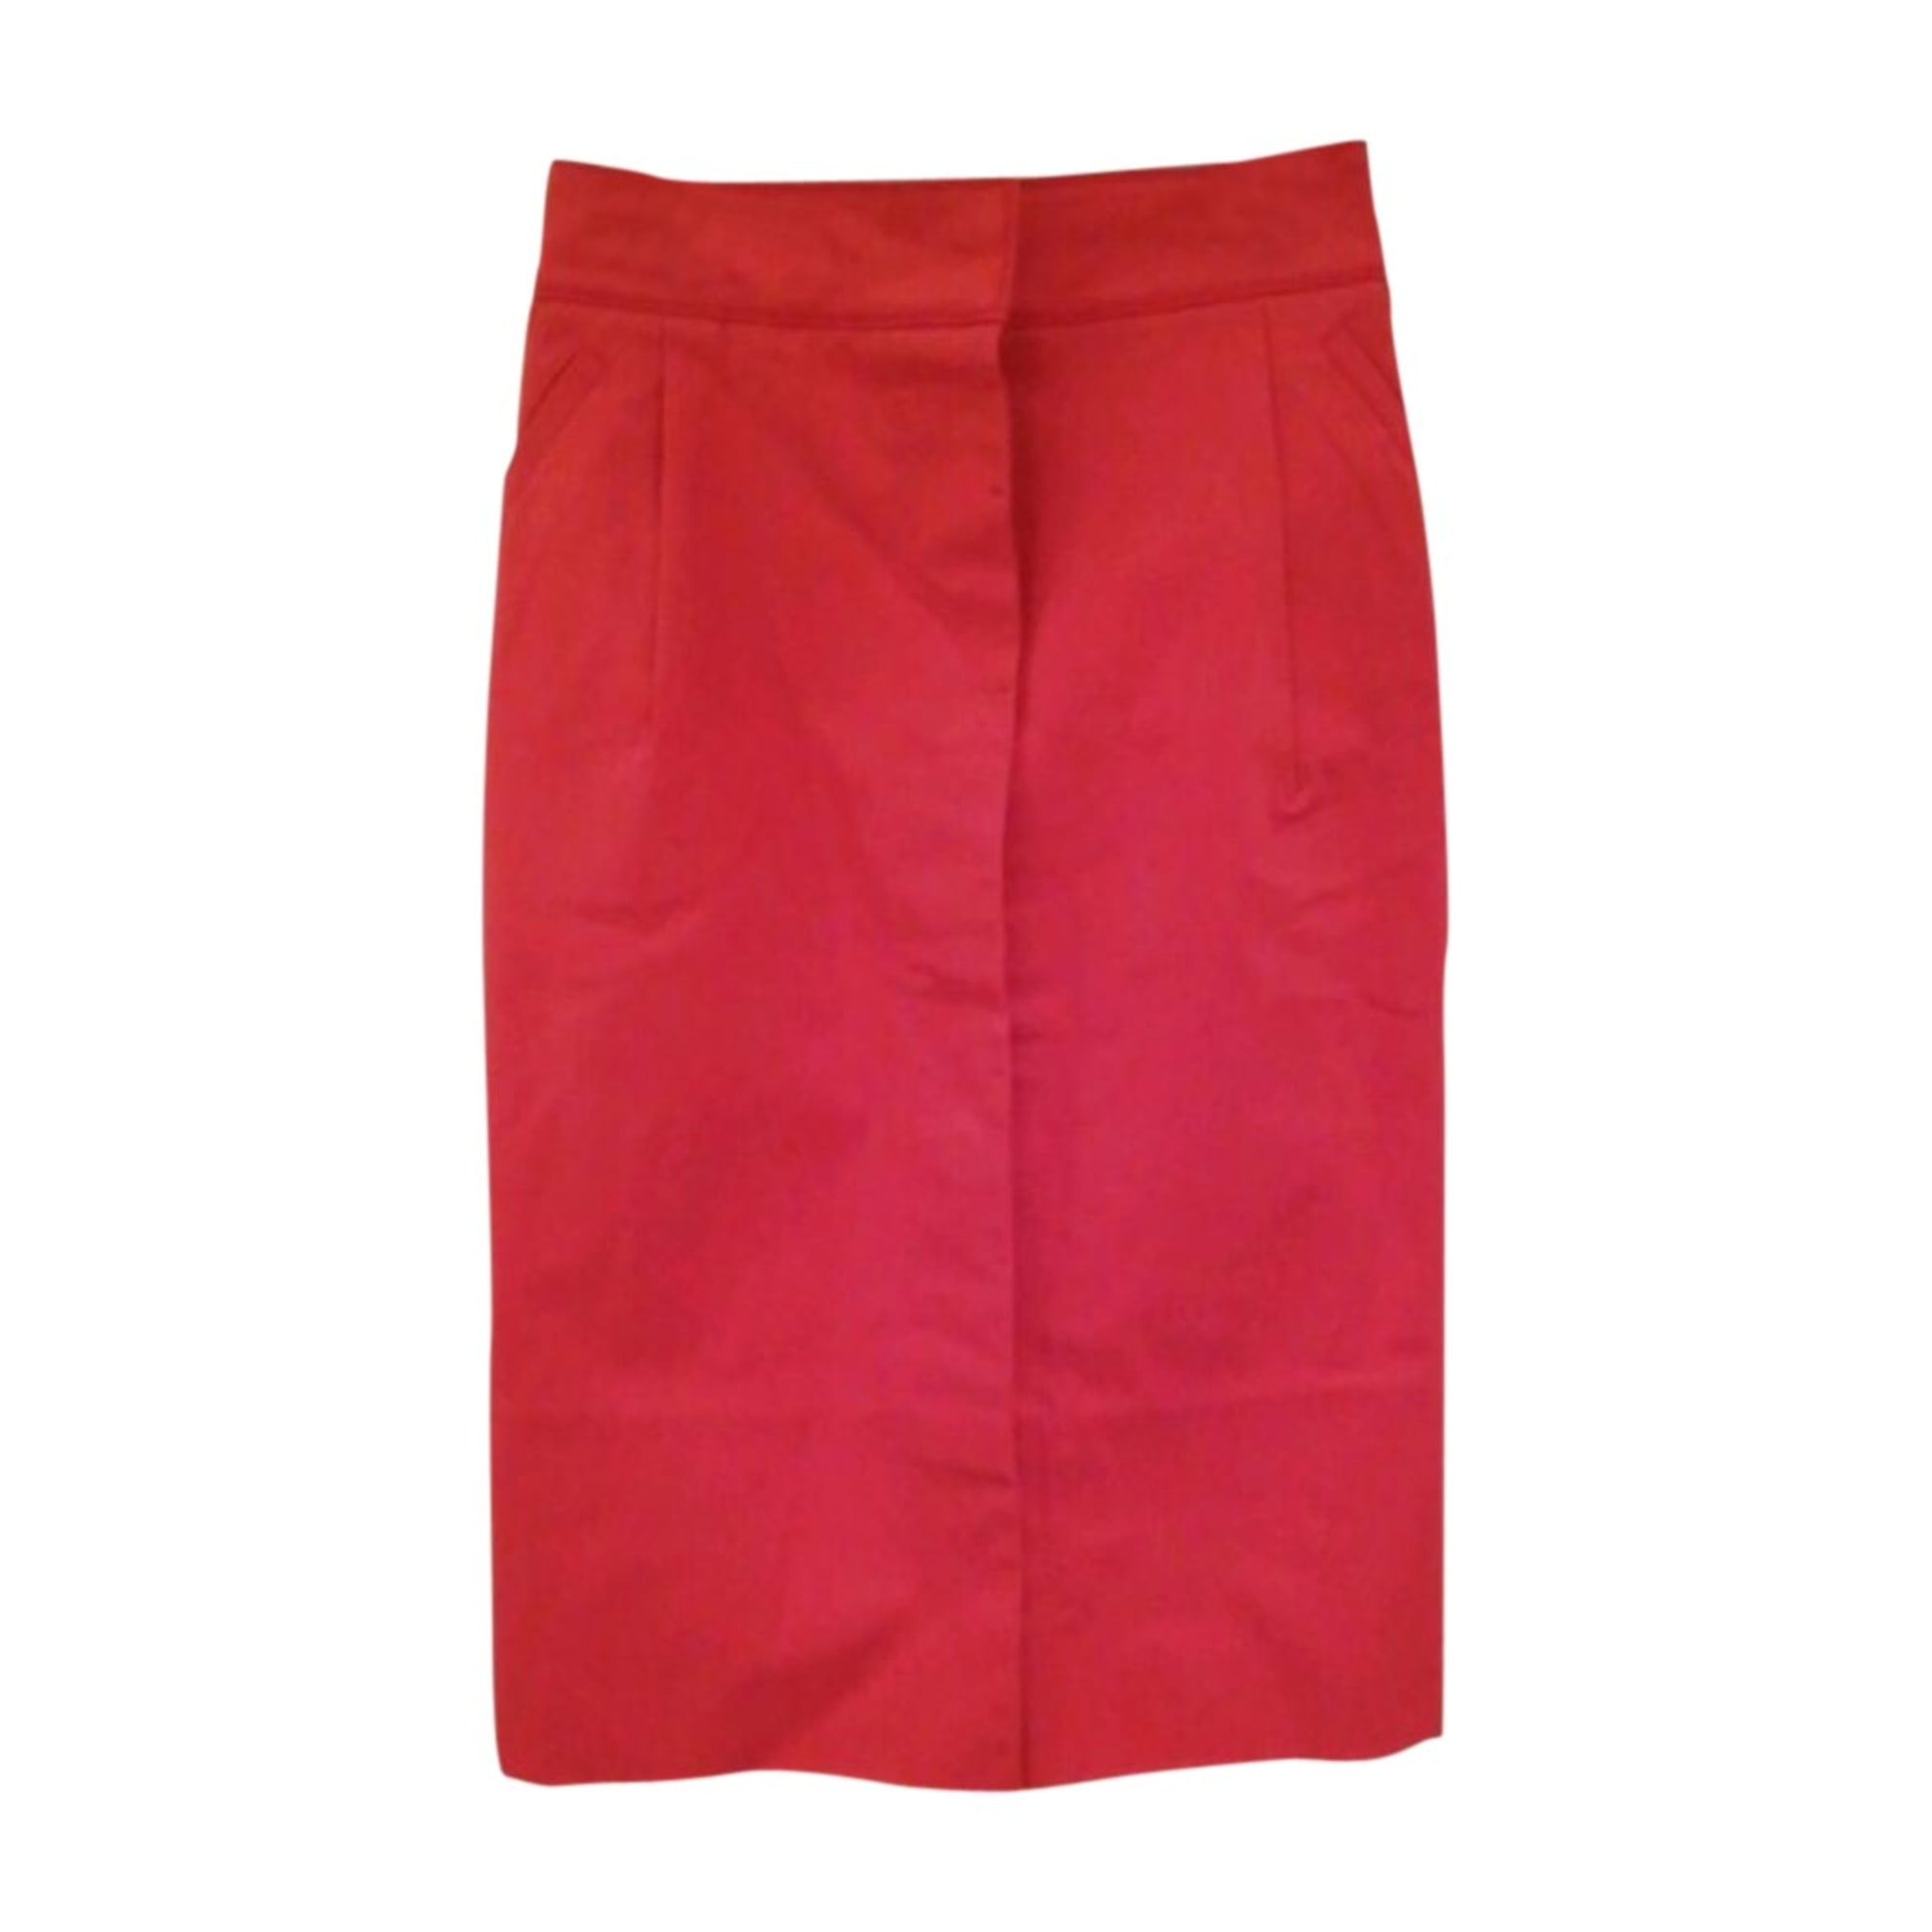 Midi Skirt LOUIS VUITTON Red, burgundy